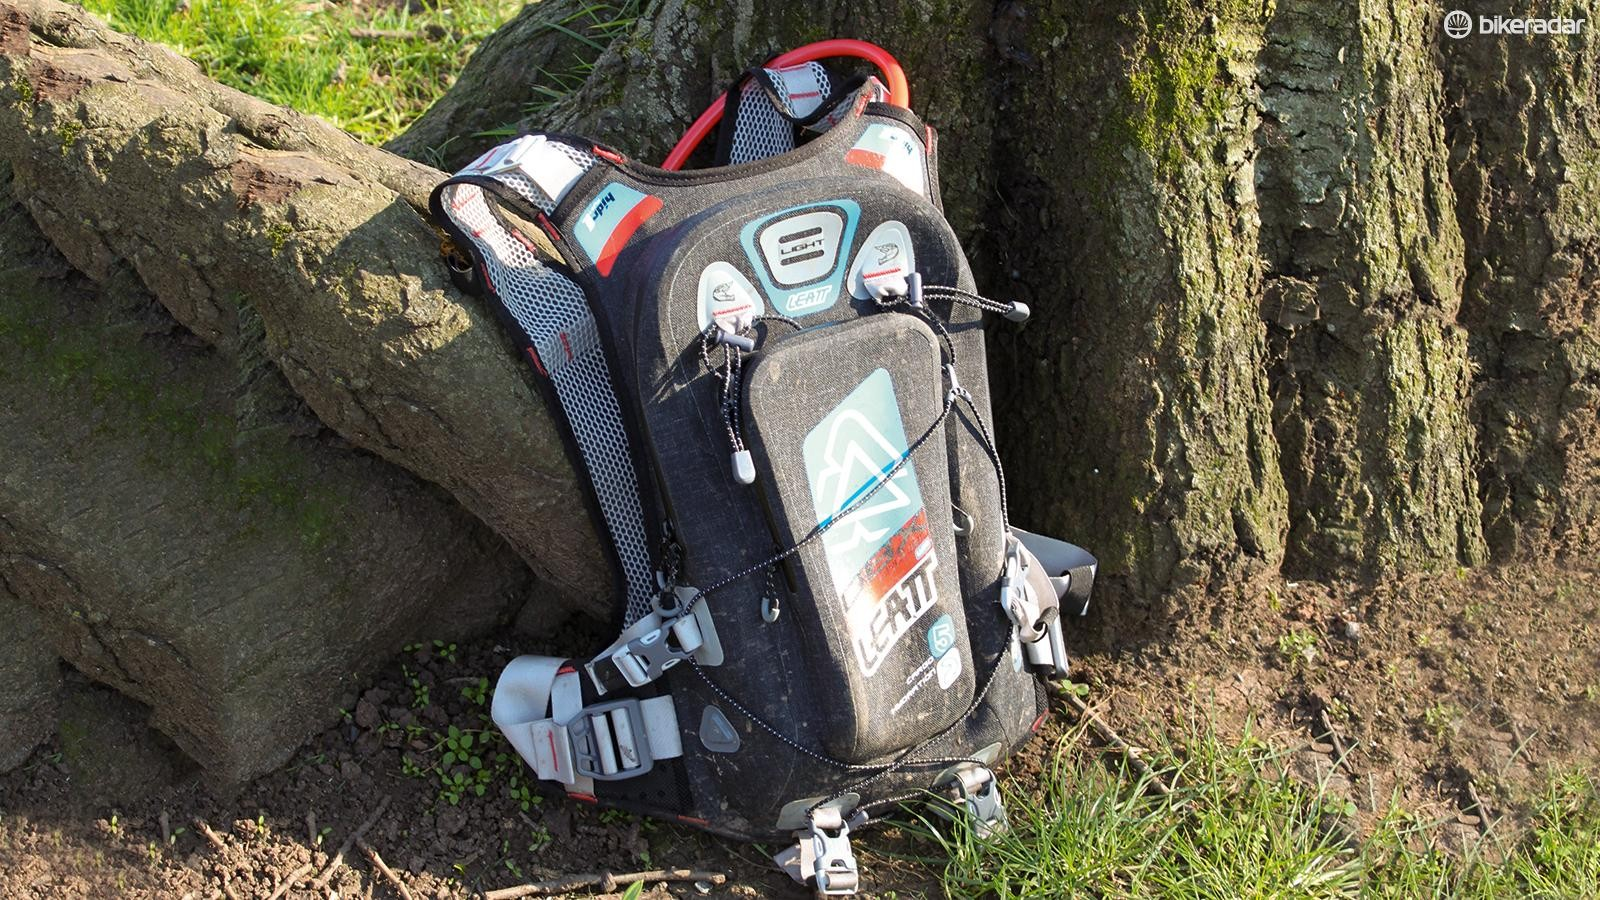 Leatt's DBX Enduro Lite WP 2.0 hydration pack didn't really live up to its promise